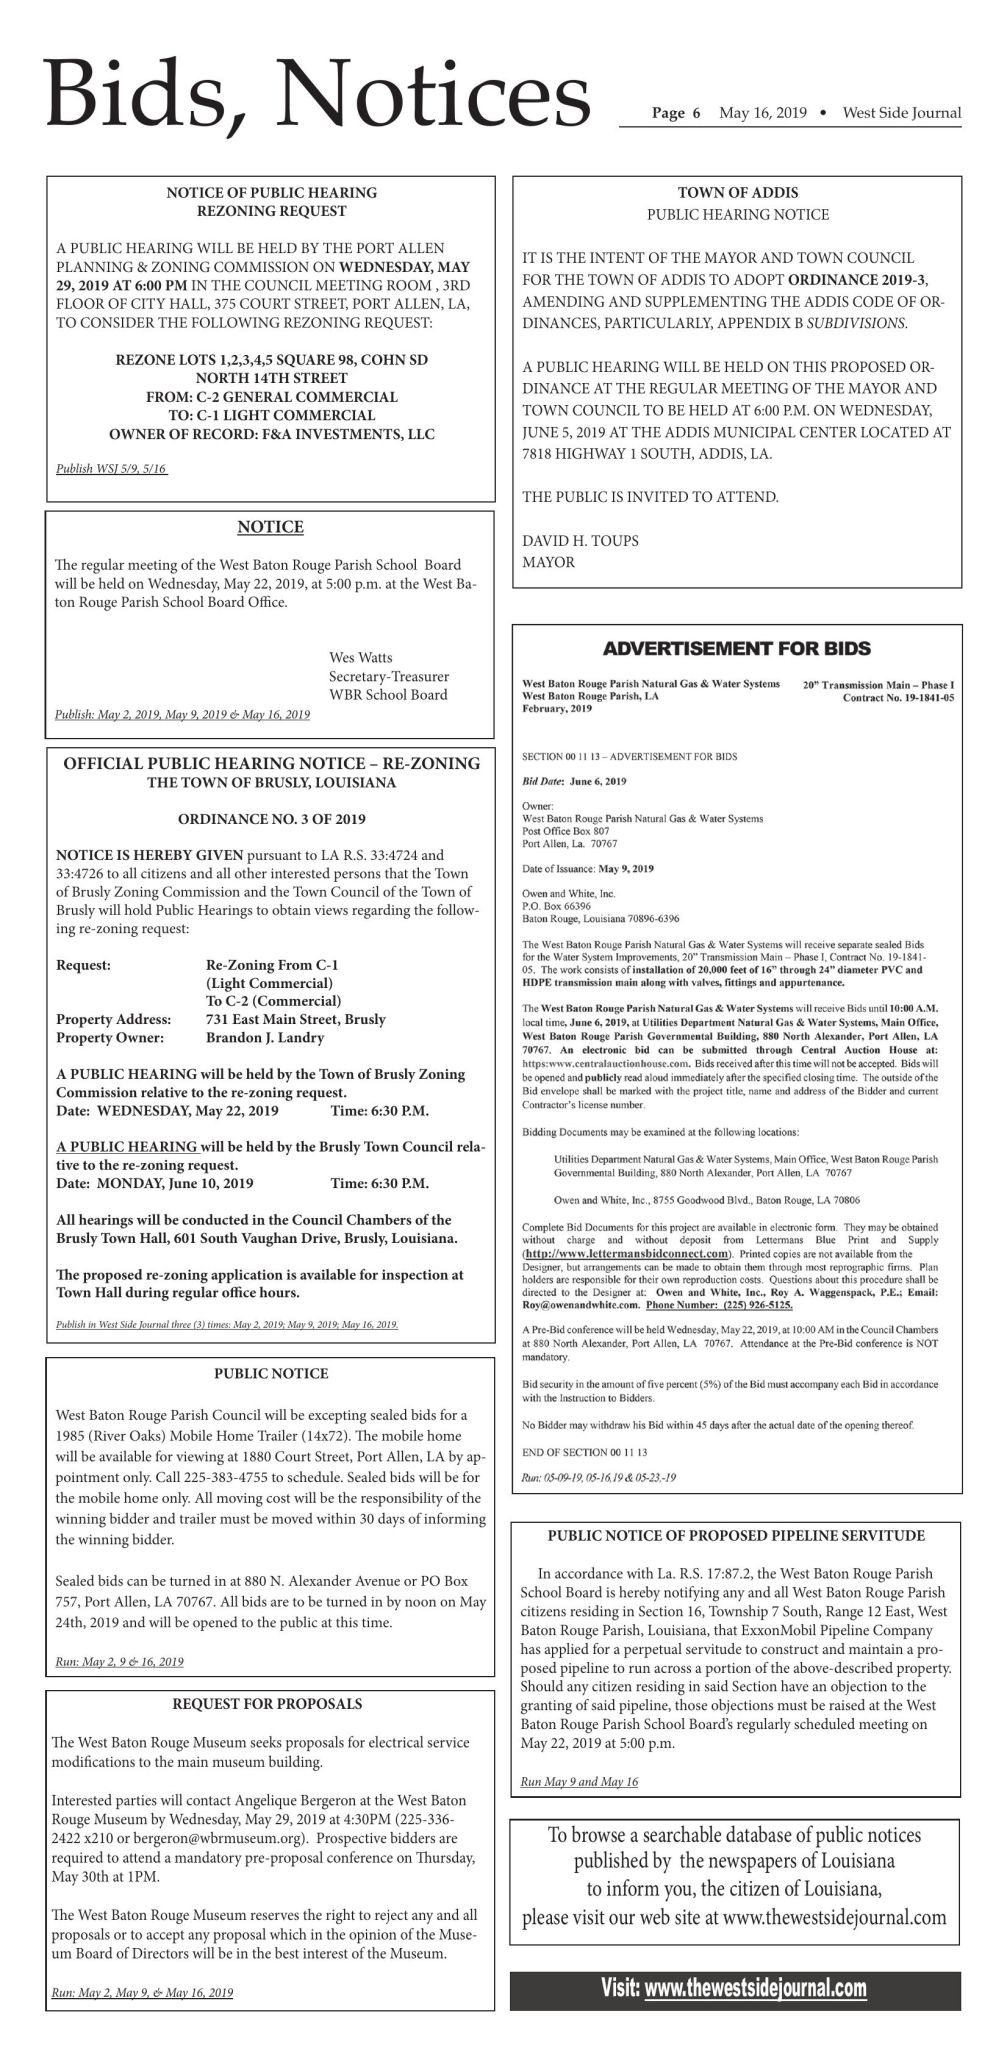 Bids and Notices 05.16.19